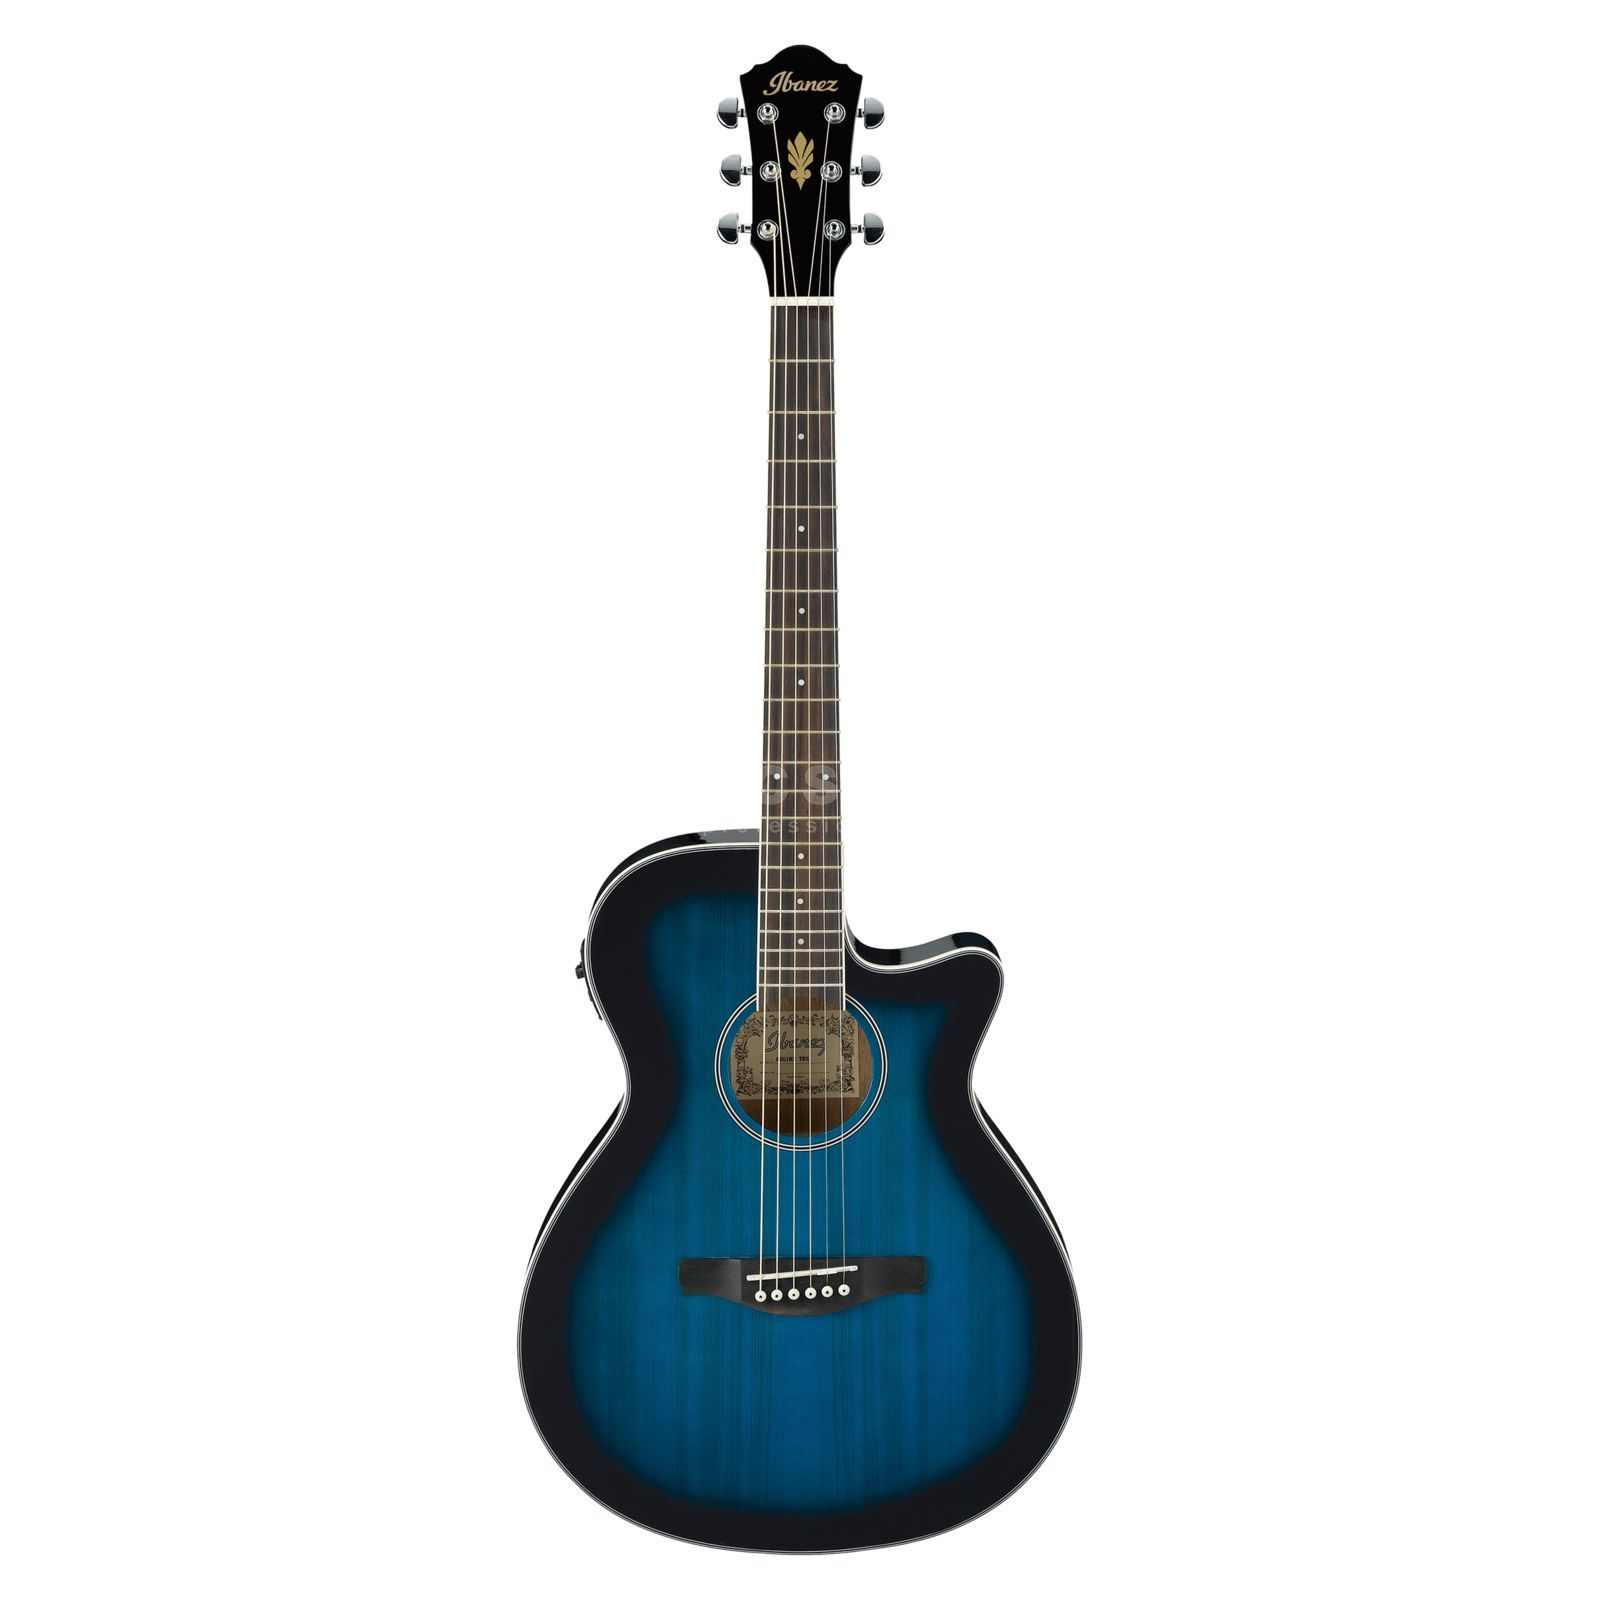 Ibanez AEG8E-TBS Transparent Blue Sunburst Product Image